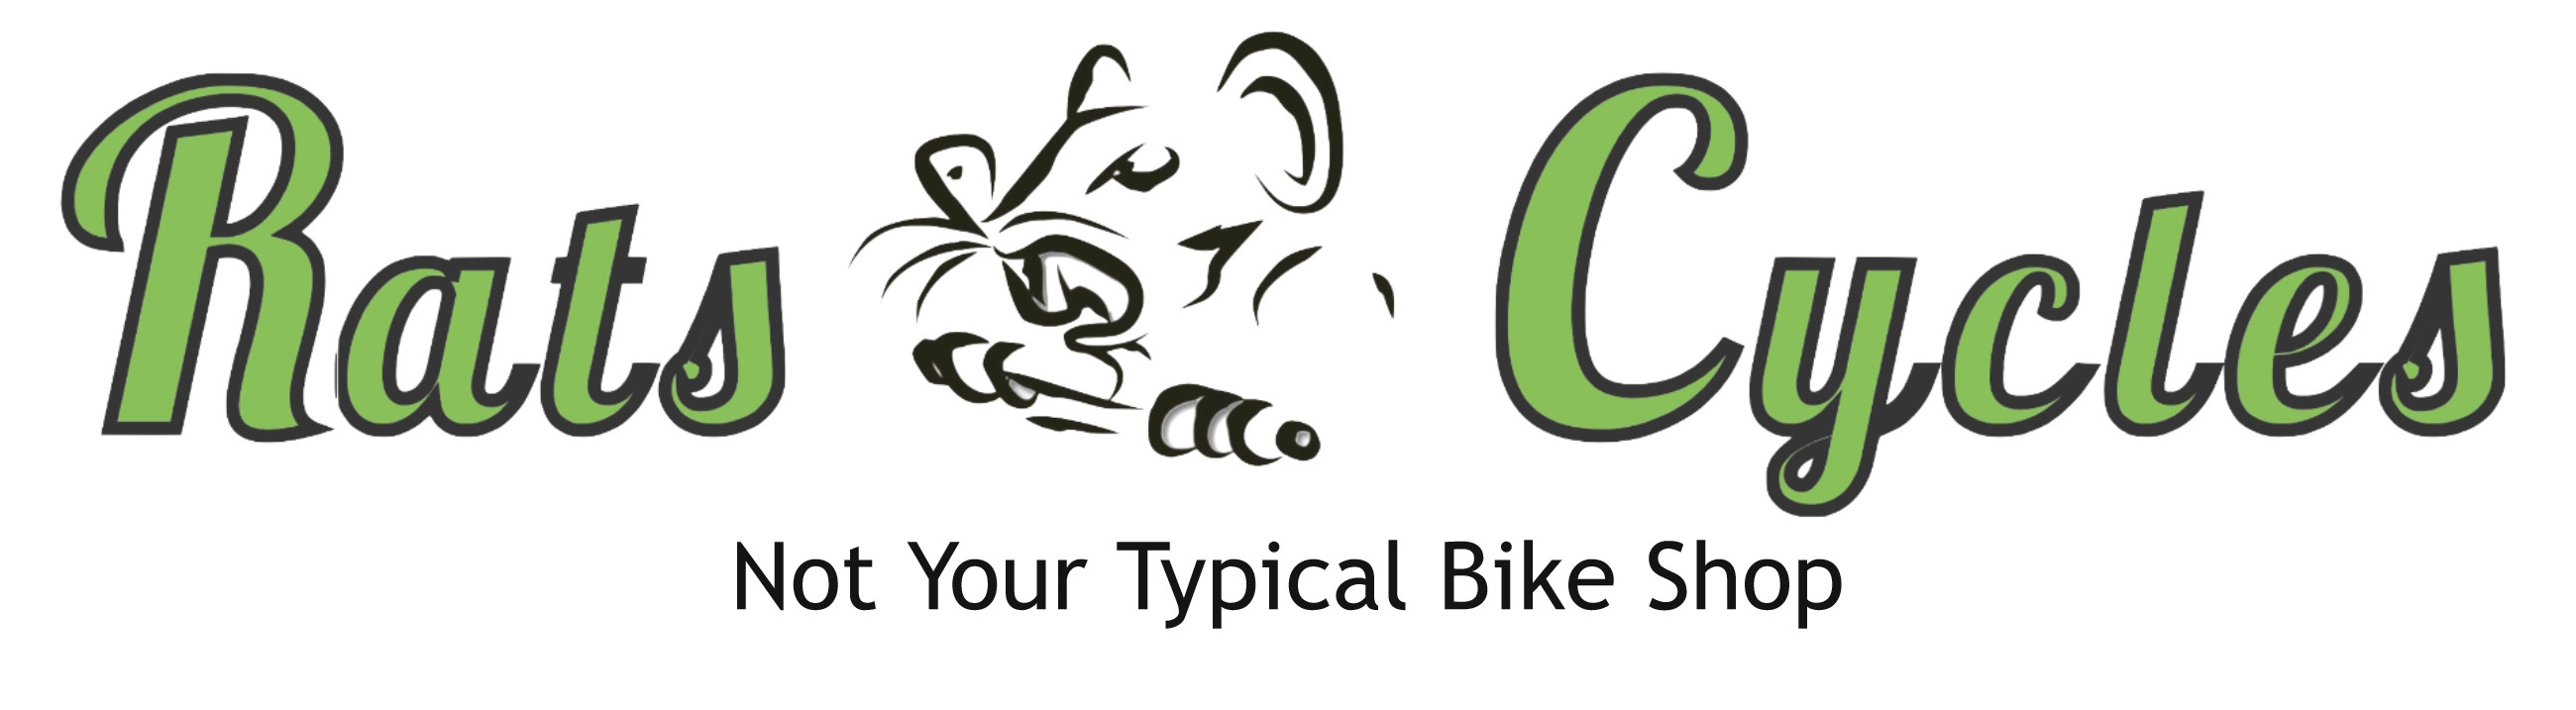 Rats Cycles Logo